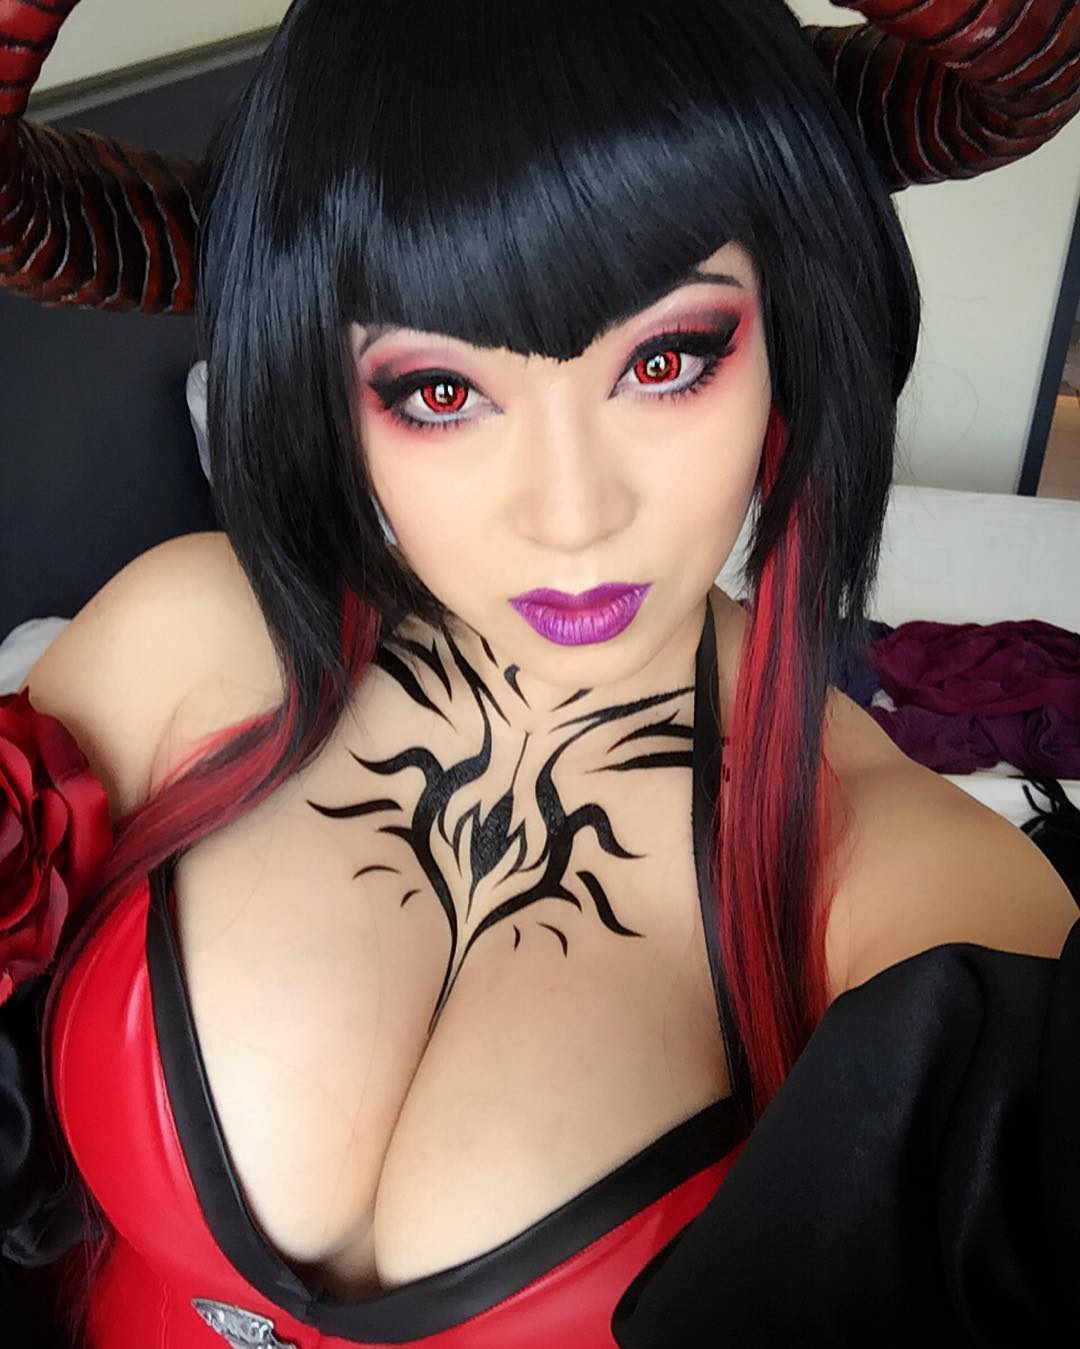 Yaya Han Cosplay Cleavage Pictures (16 pics)